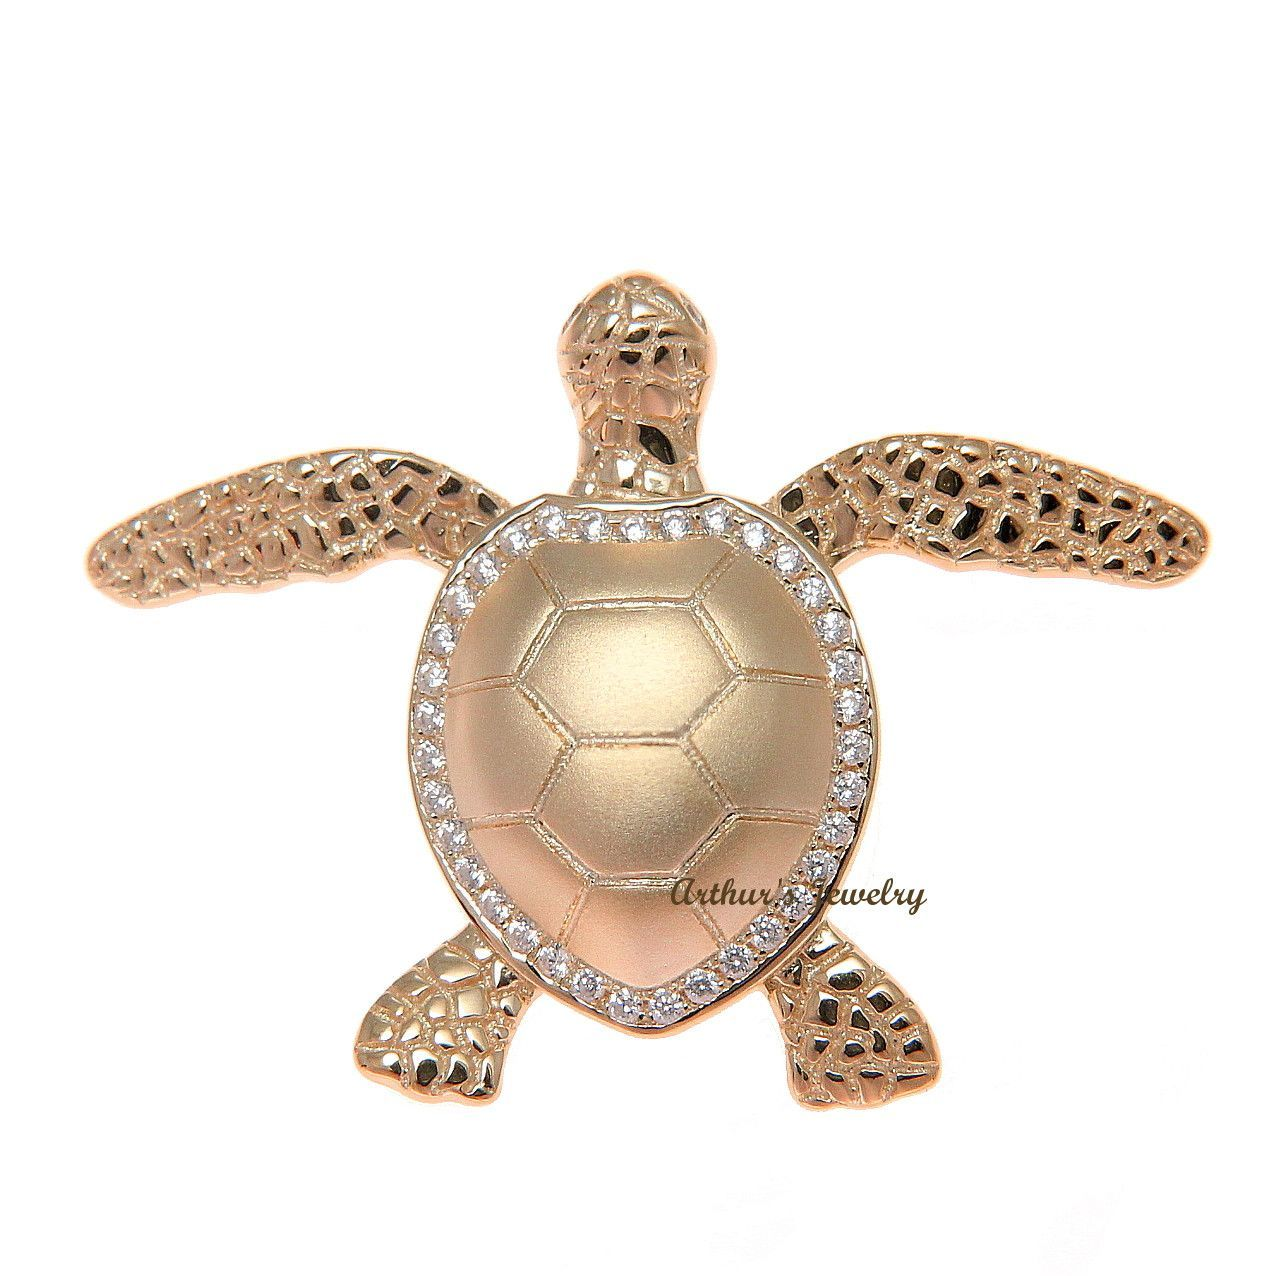 Arthurs Jewelry 925 sterling silver rhodium plated Hawaiian swimming sea turtle cz pendant